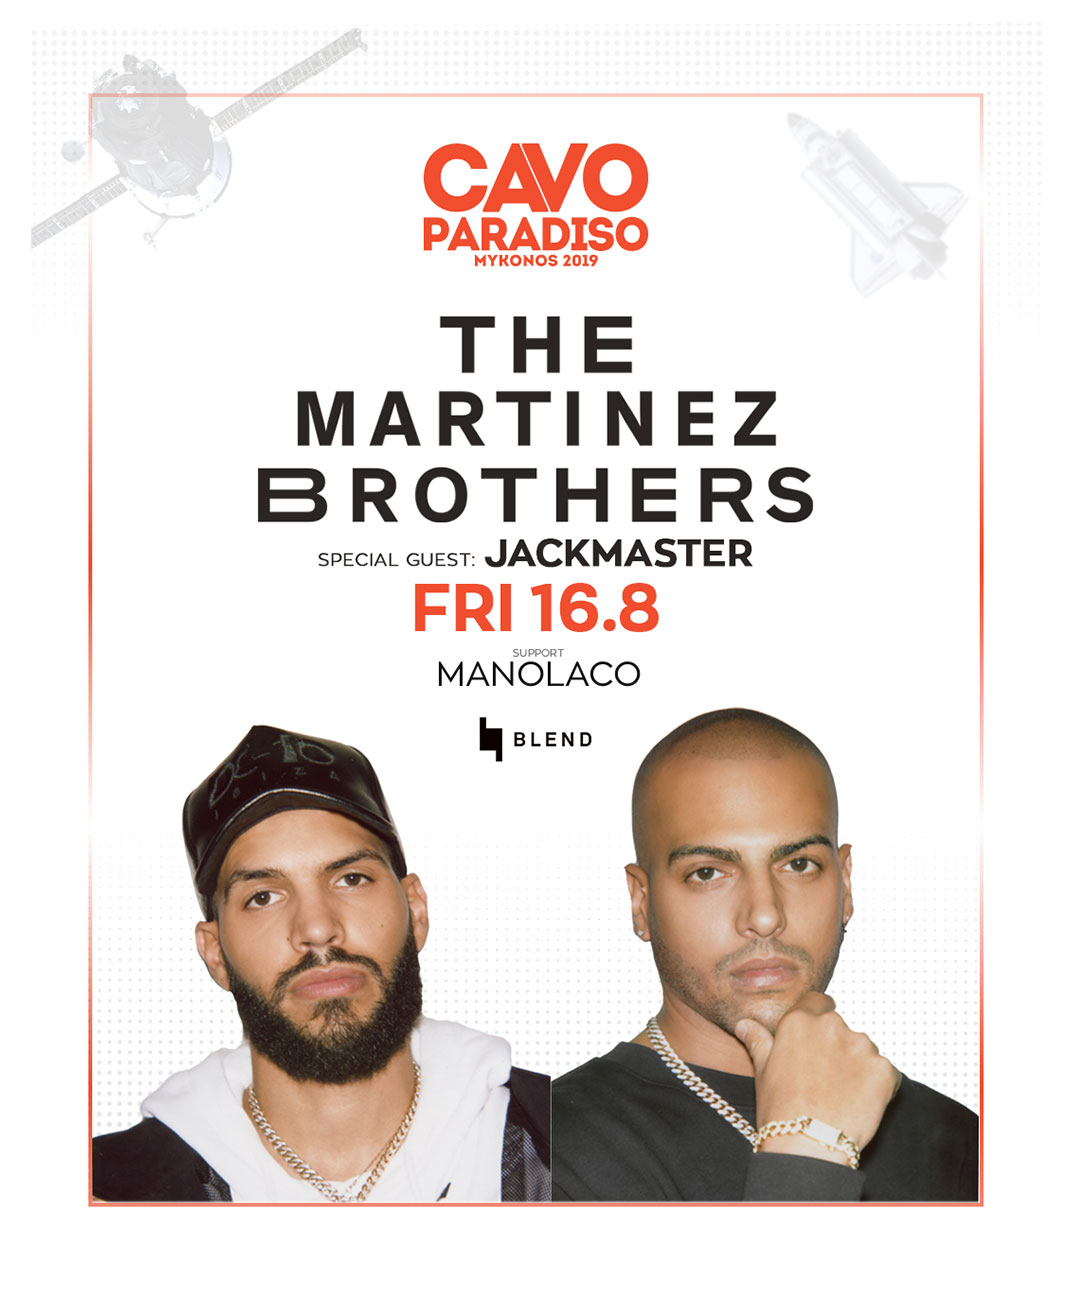 The Martinez Brothers with special guest Jackmaster & support by Manolaco